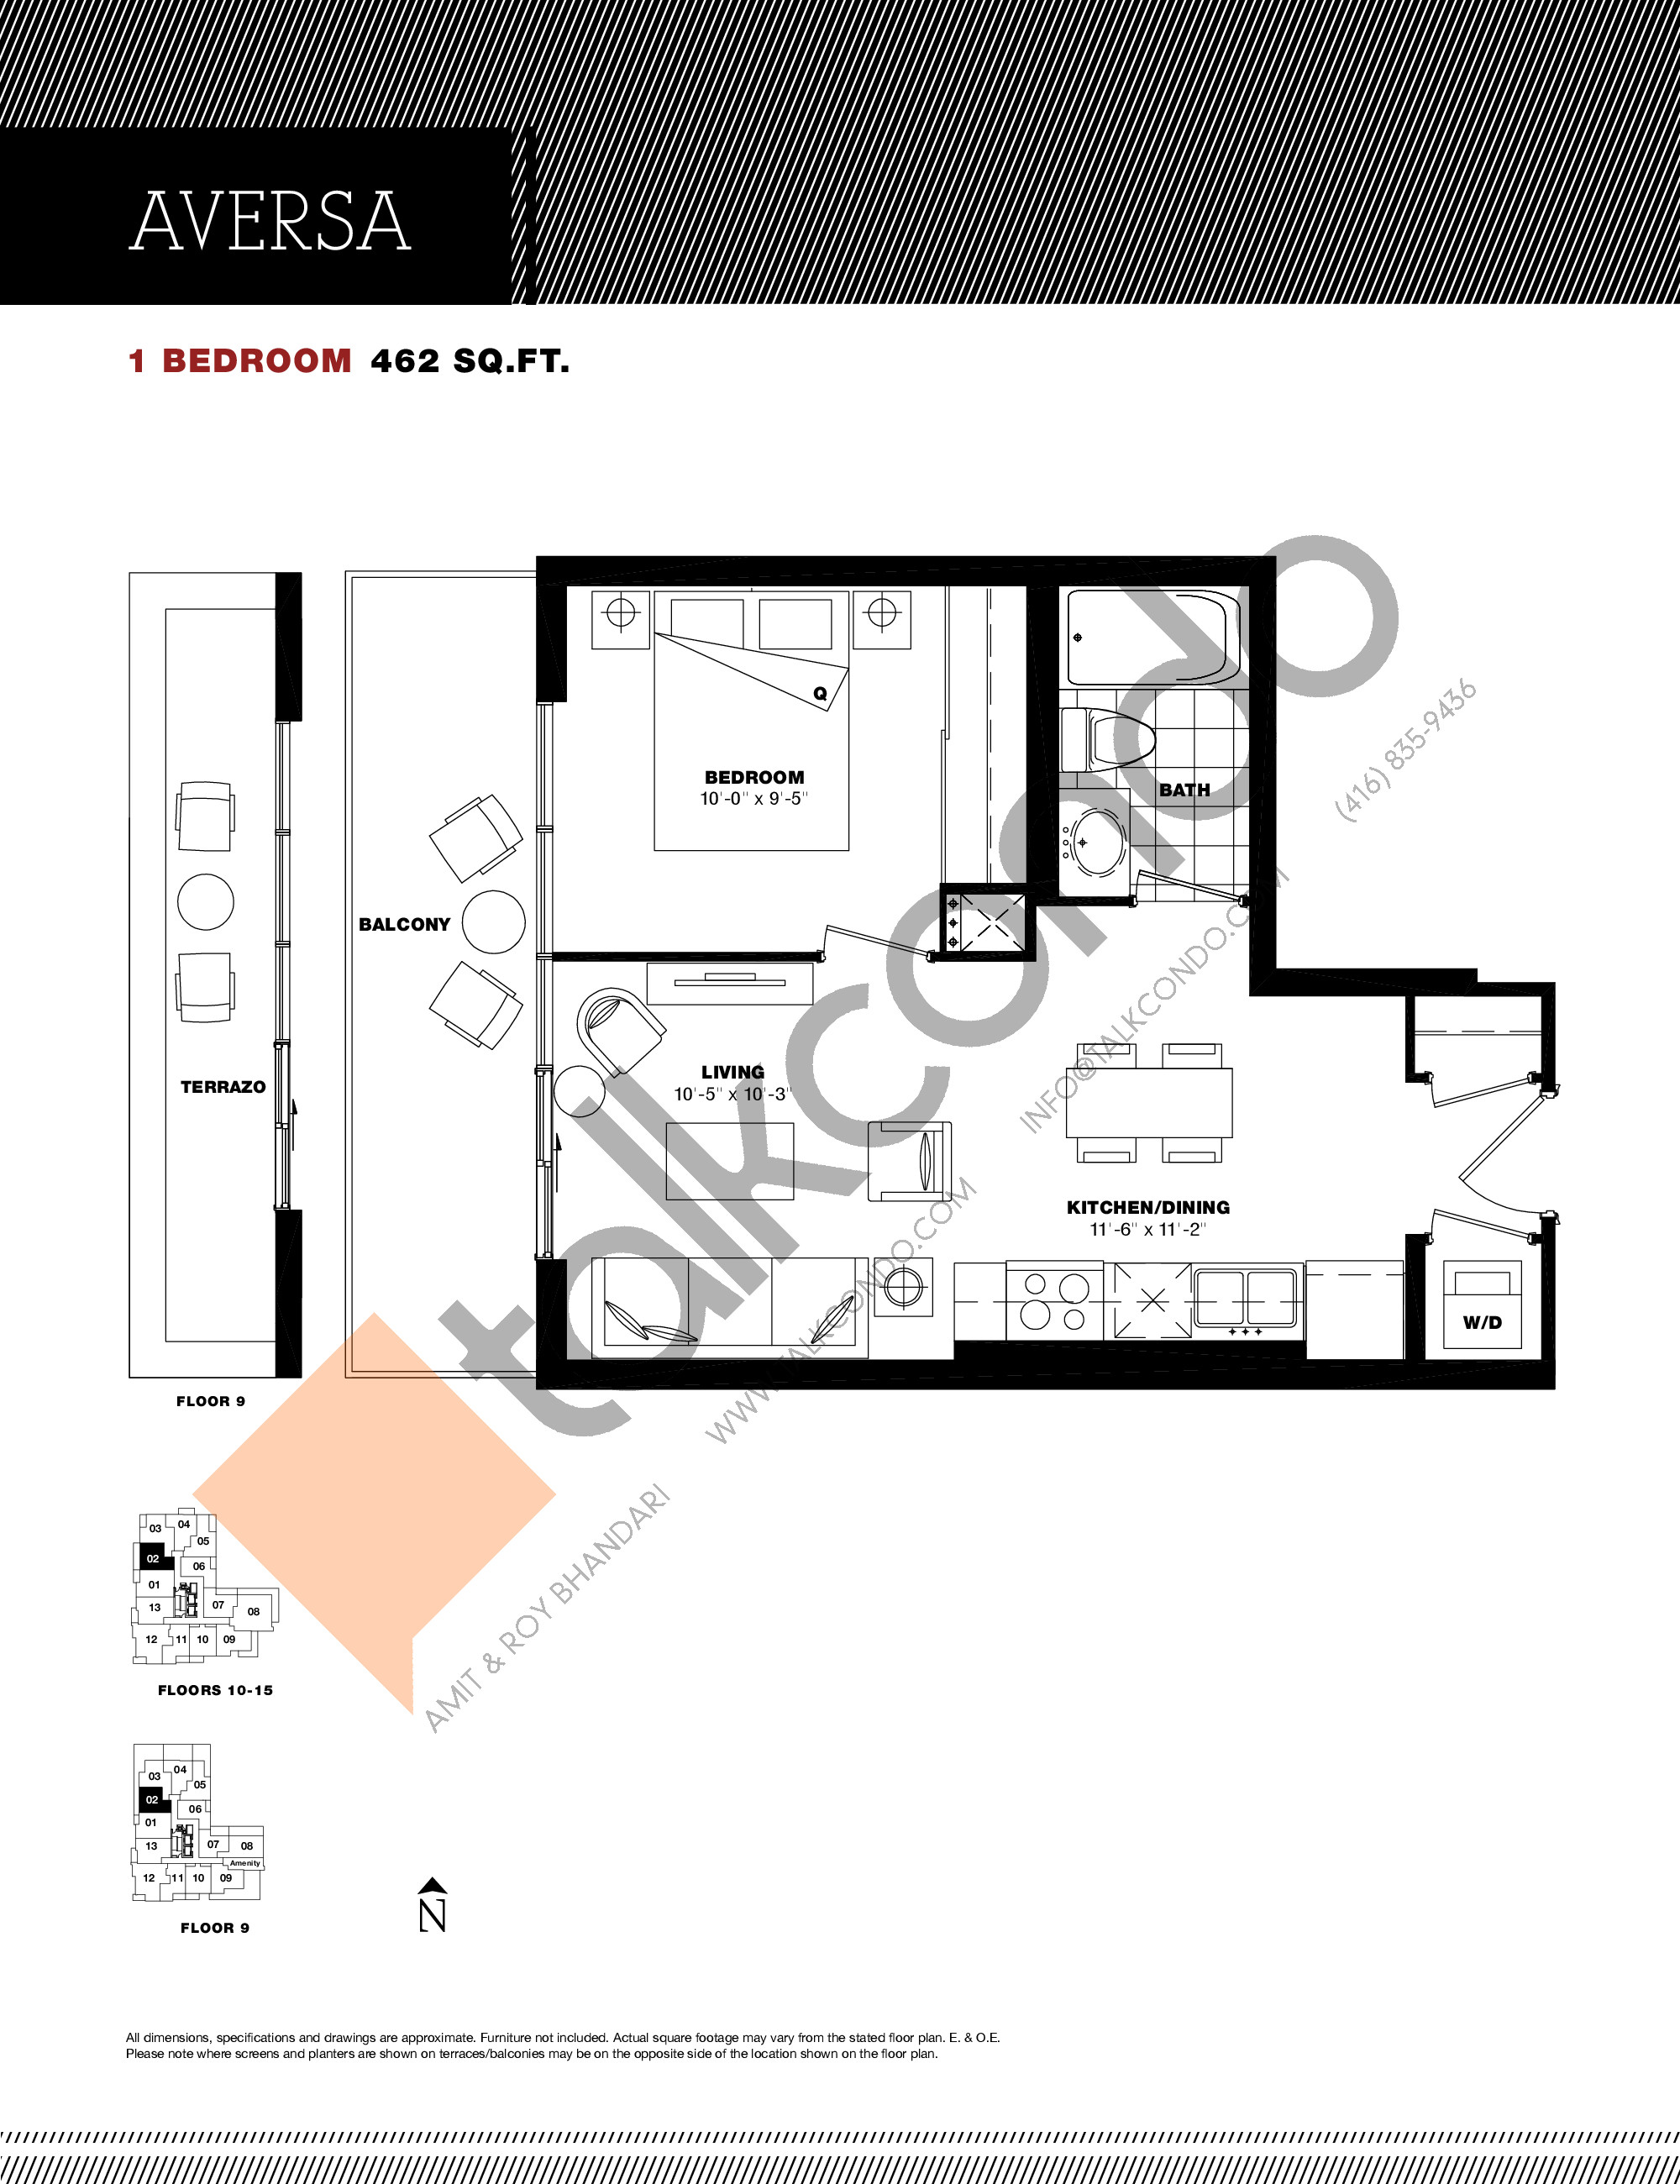 Aversa Floor Plan at Residenze Palazzo at Treviso 3 Condos - 462 sq.ft